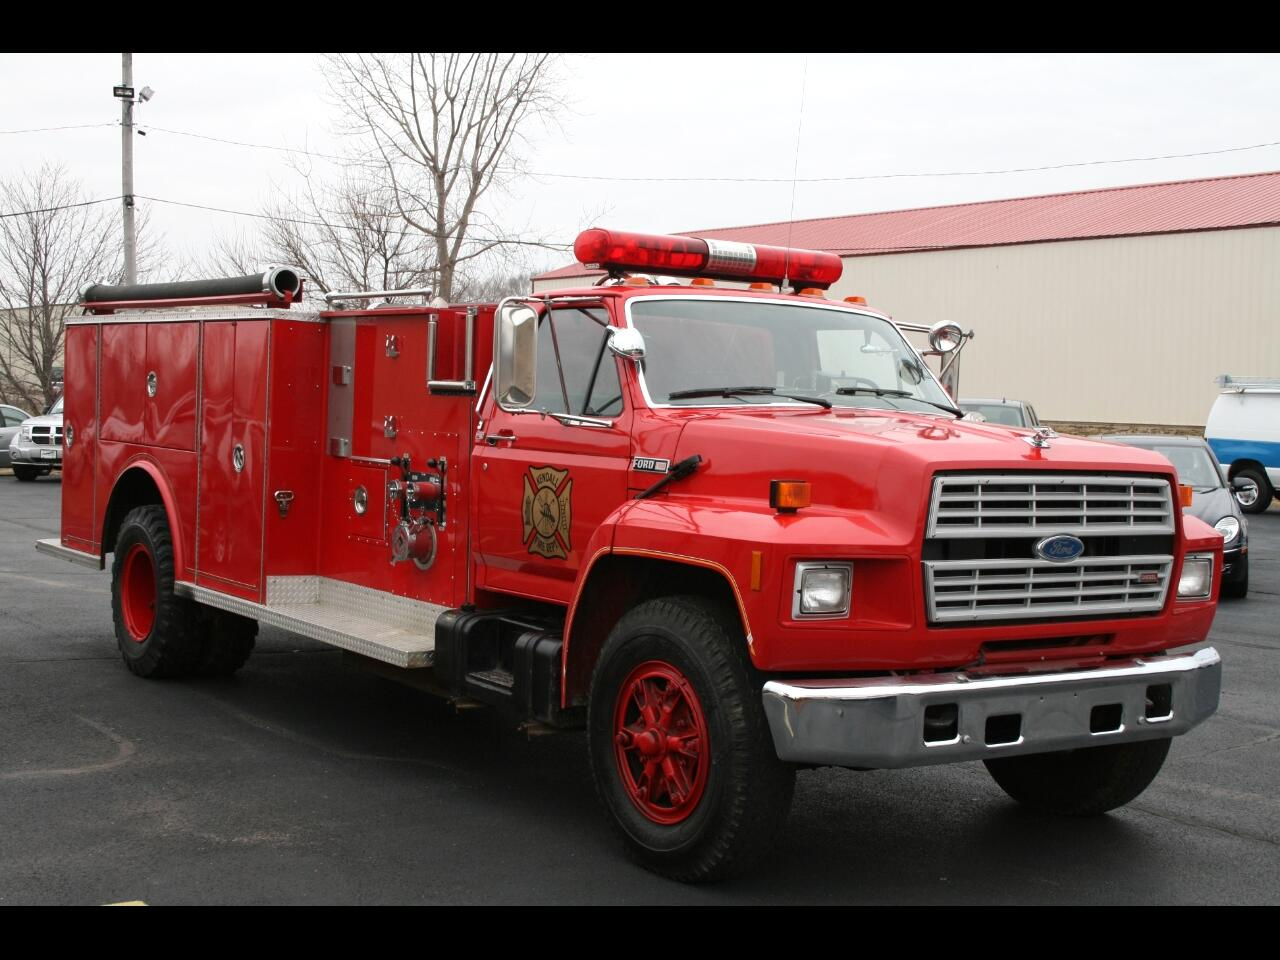 1985 Ford F8000 WELCH PUMPER FIRE TRUCK